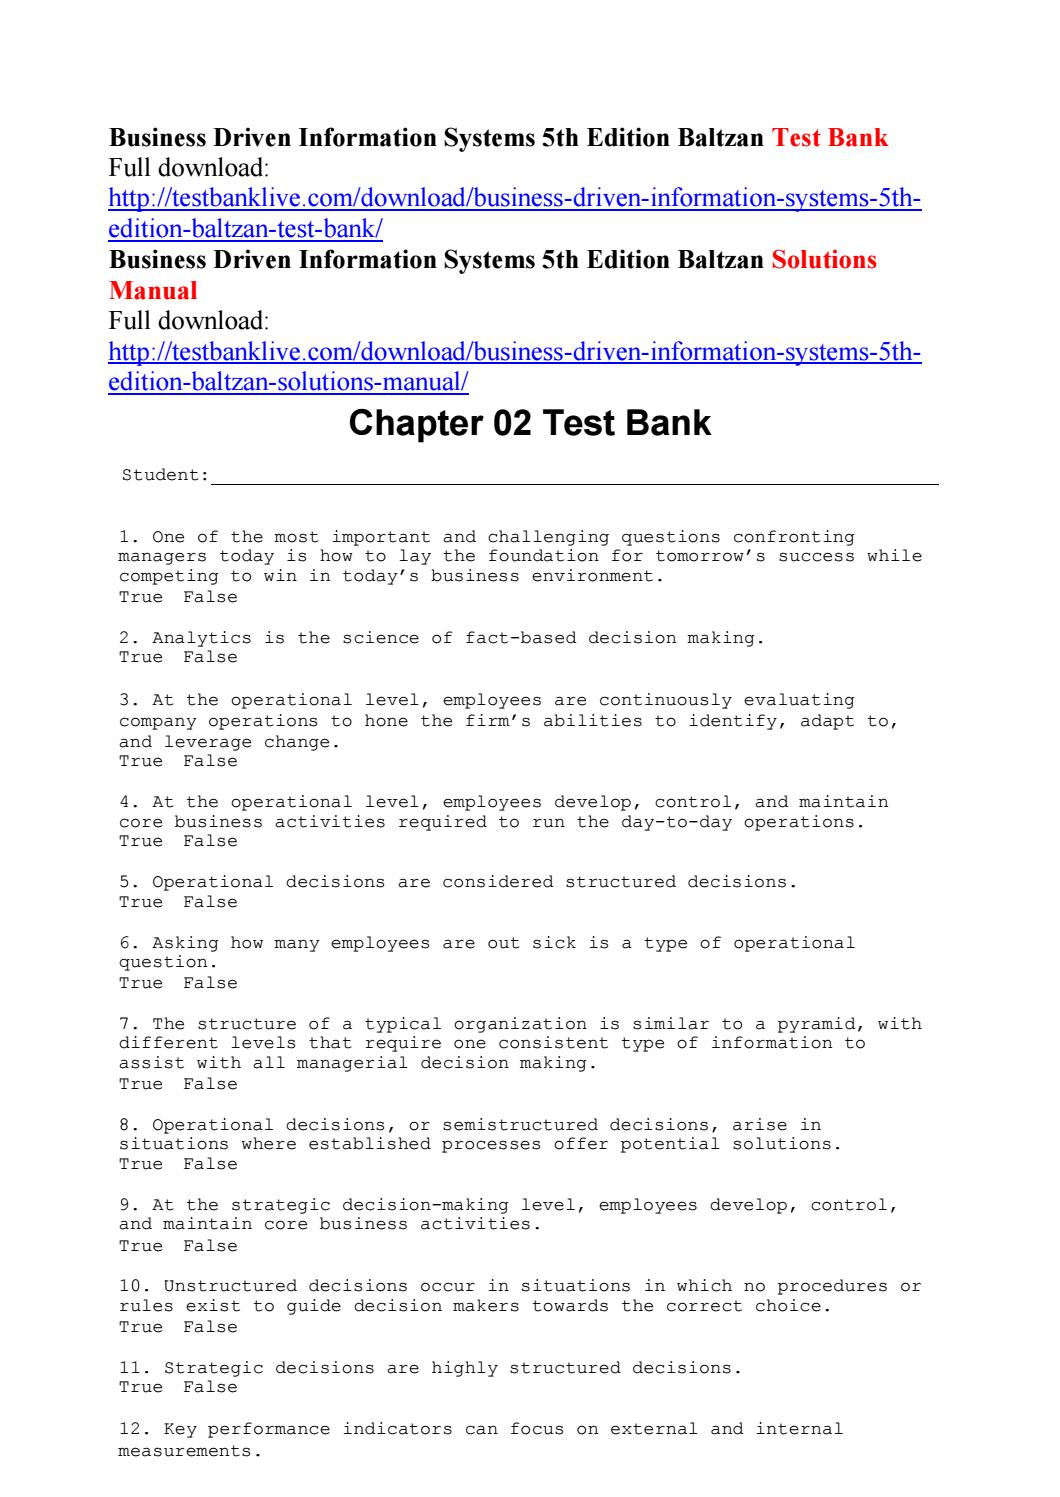 Business driven information systems 5th edition baltzan test bank by  alladin111 - issuu